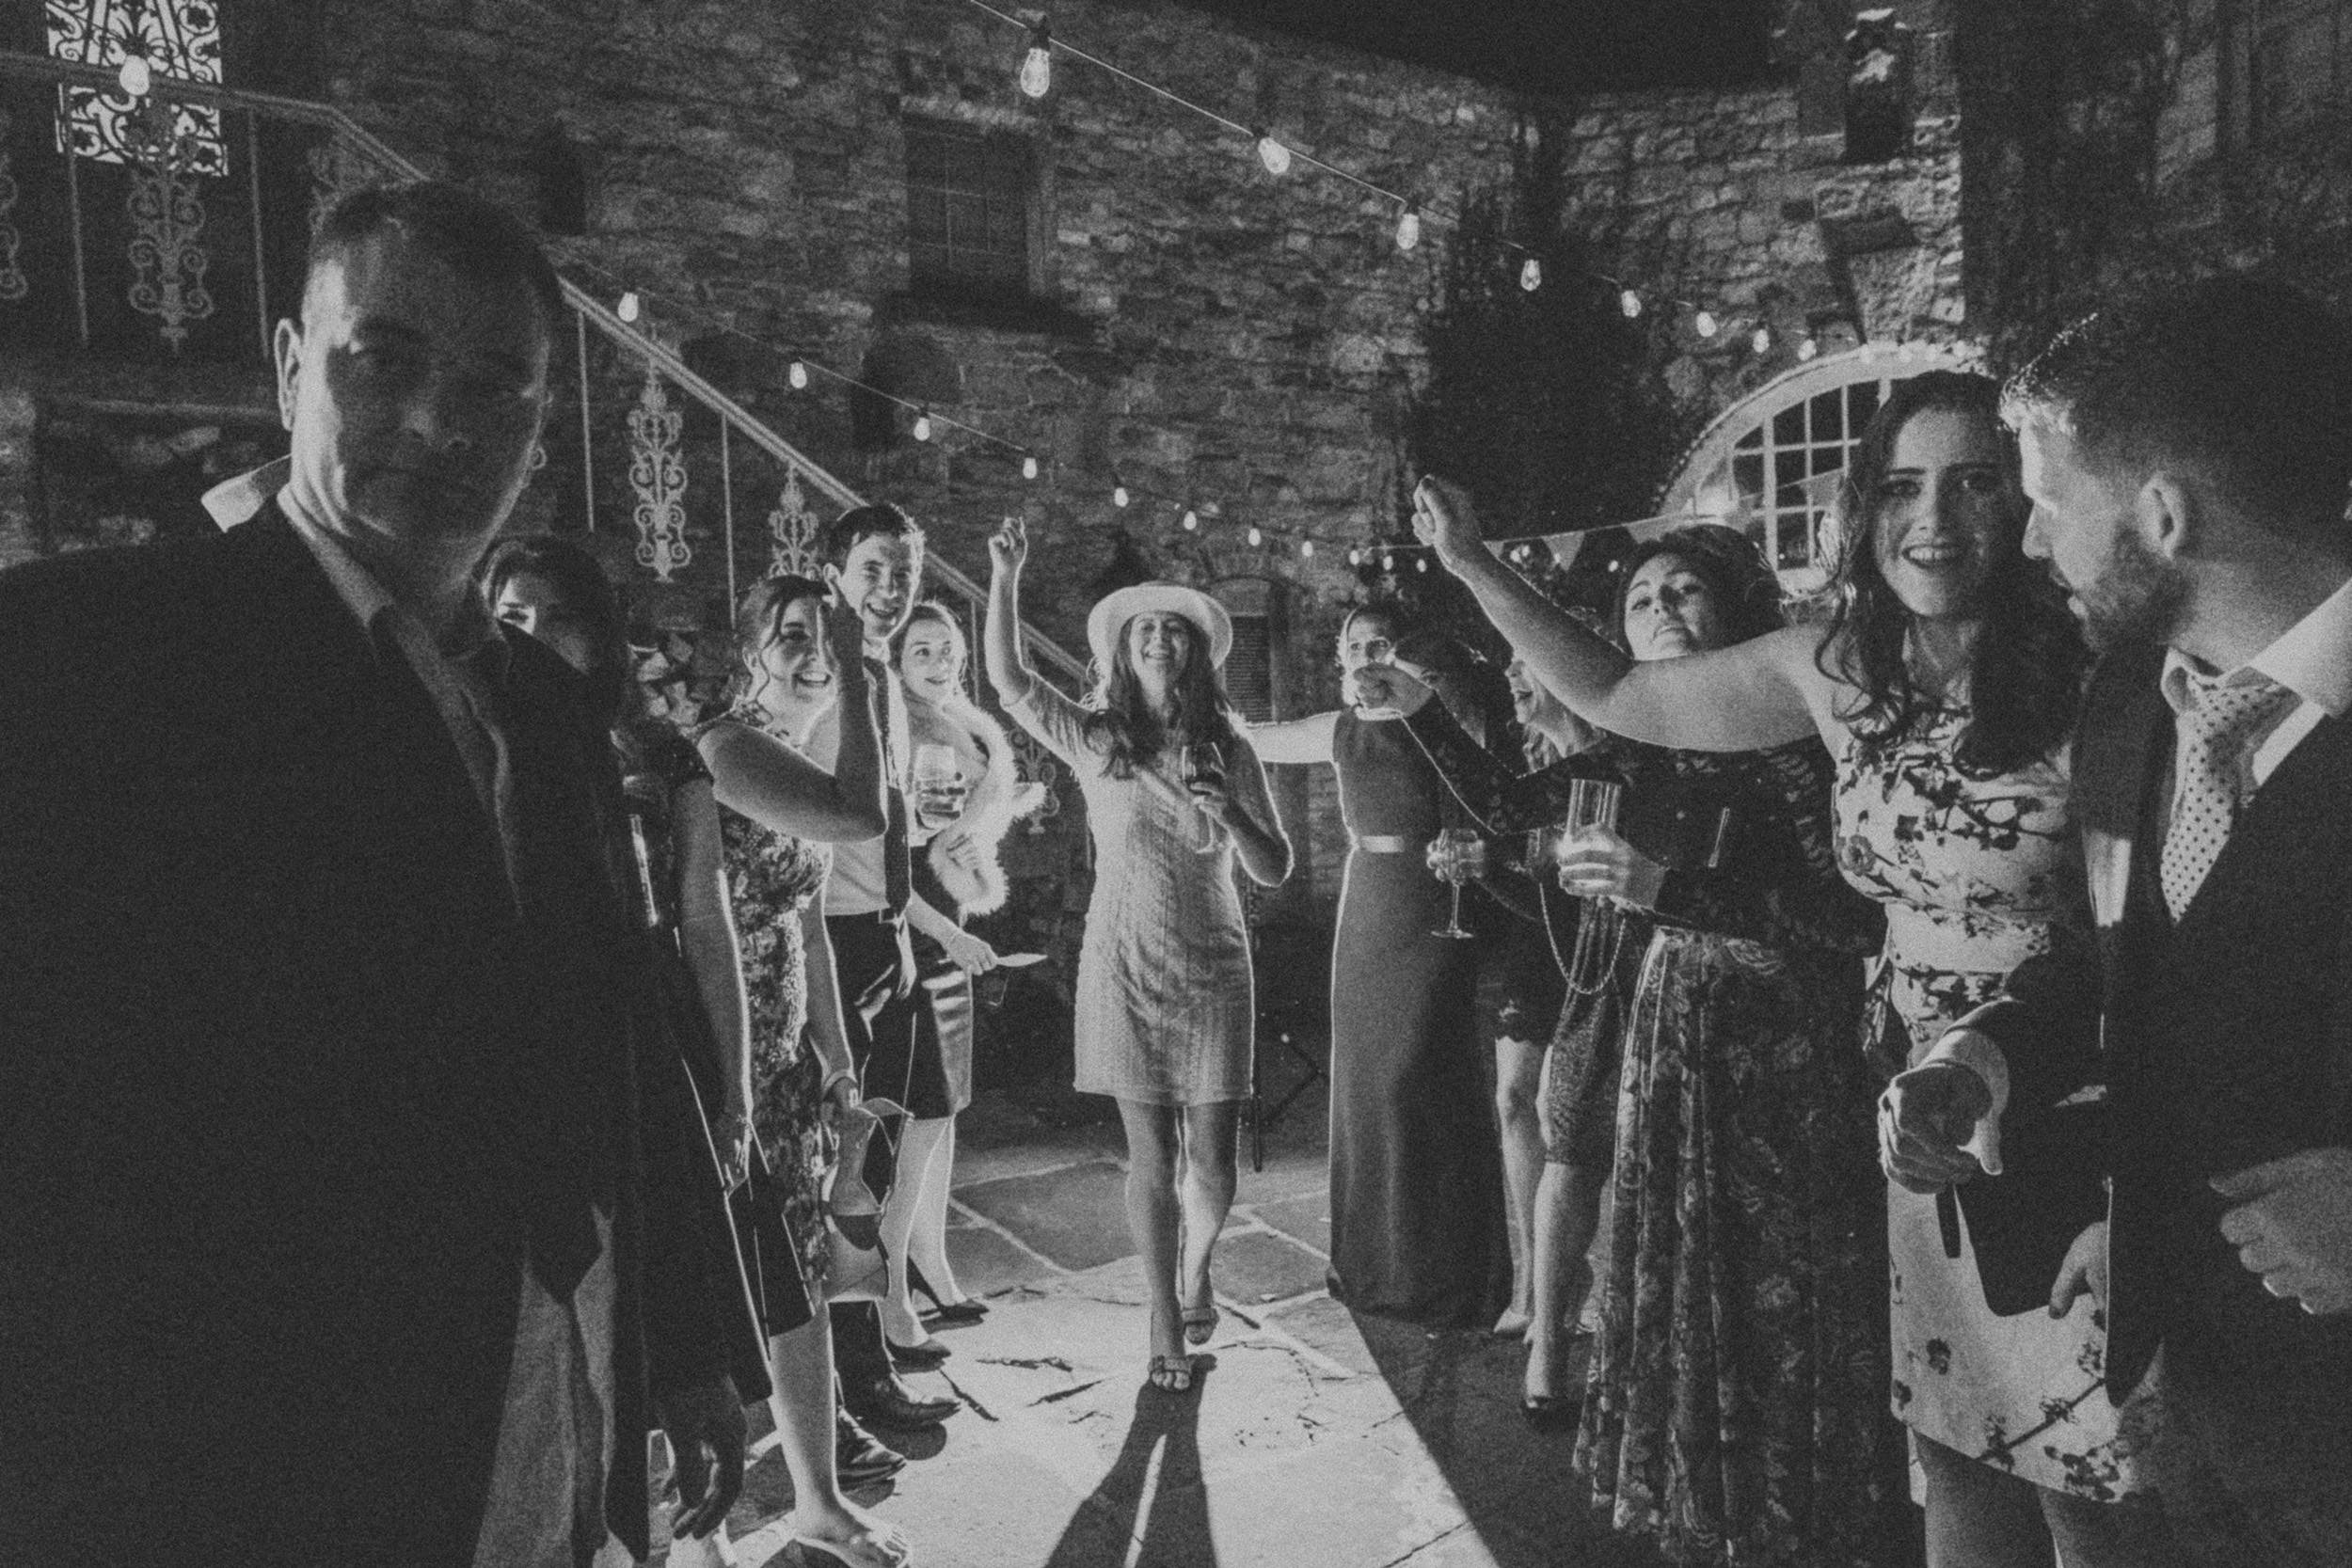 clairebyrnephotography-fun-wedding-photographer-ireland-creative-210.jpg